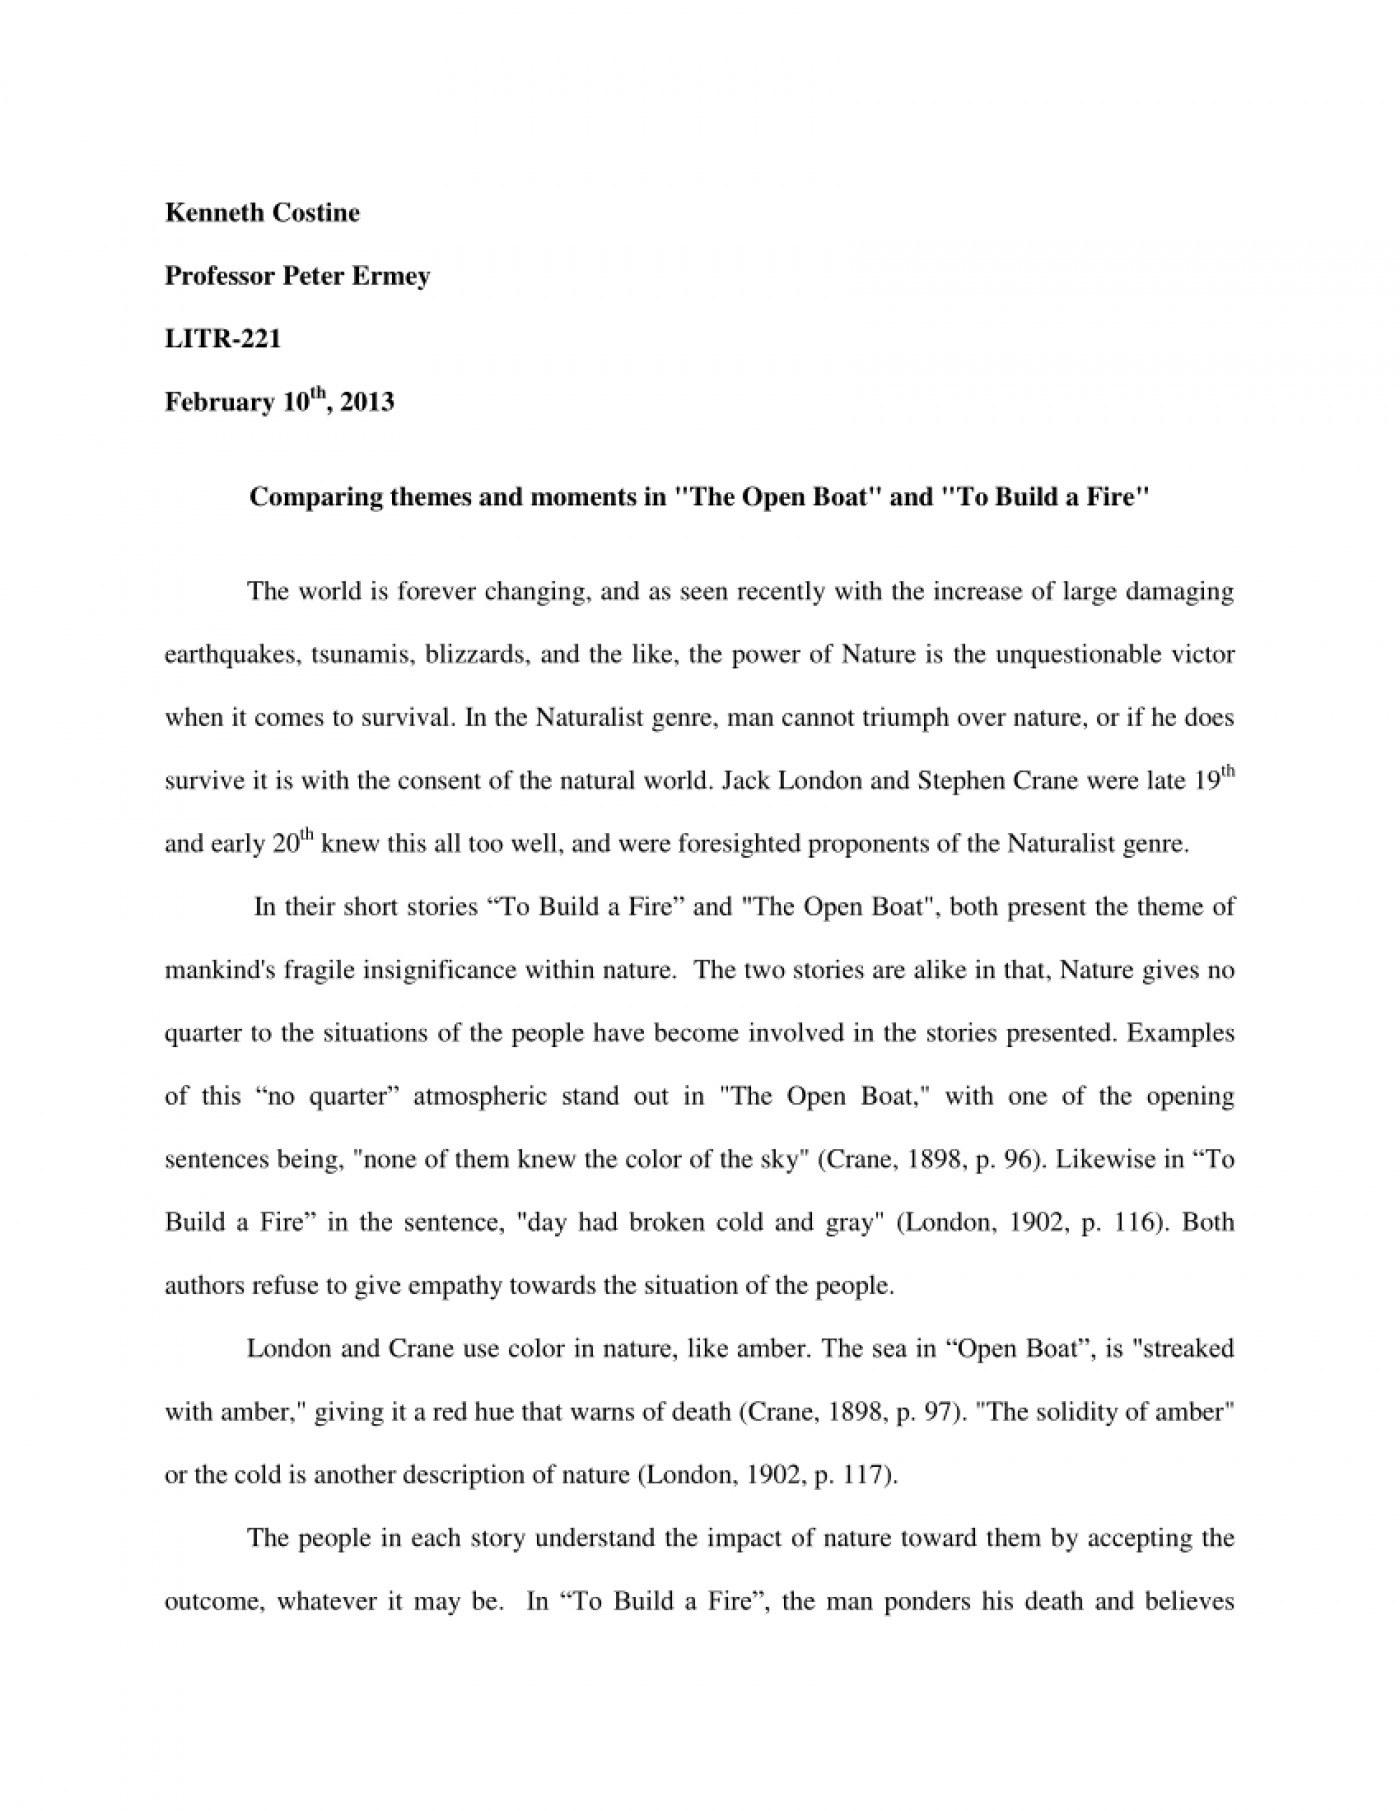 essay about fire